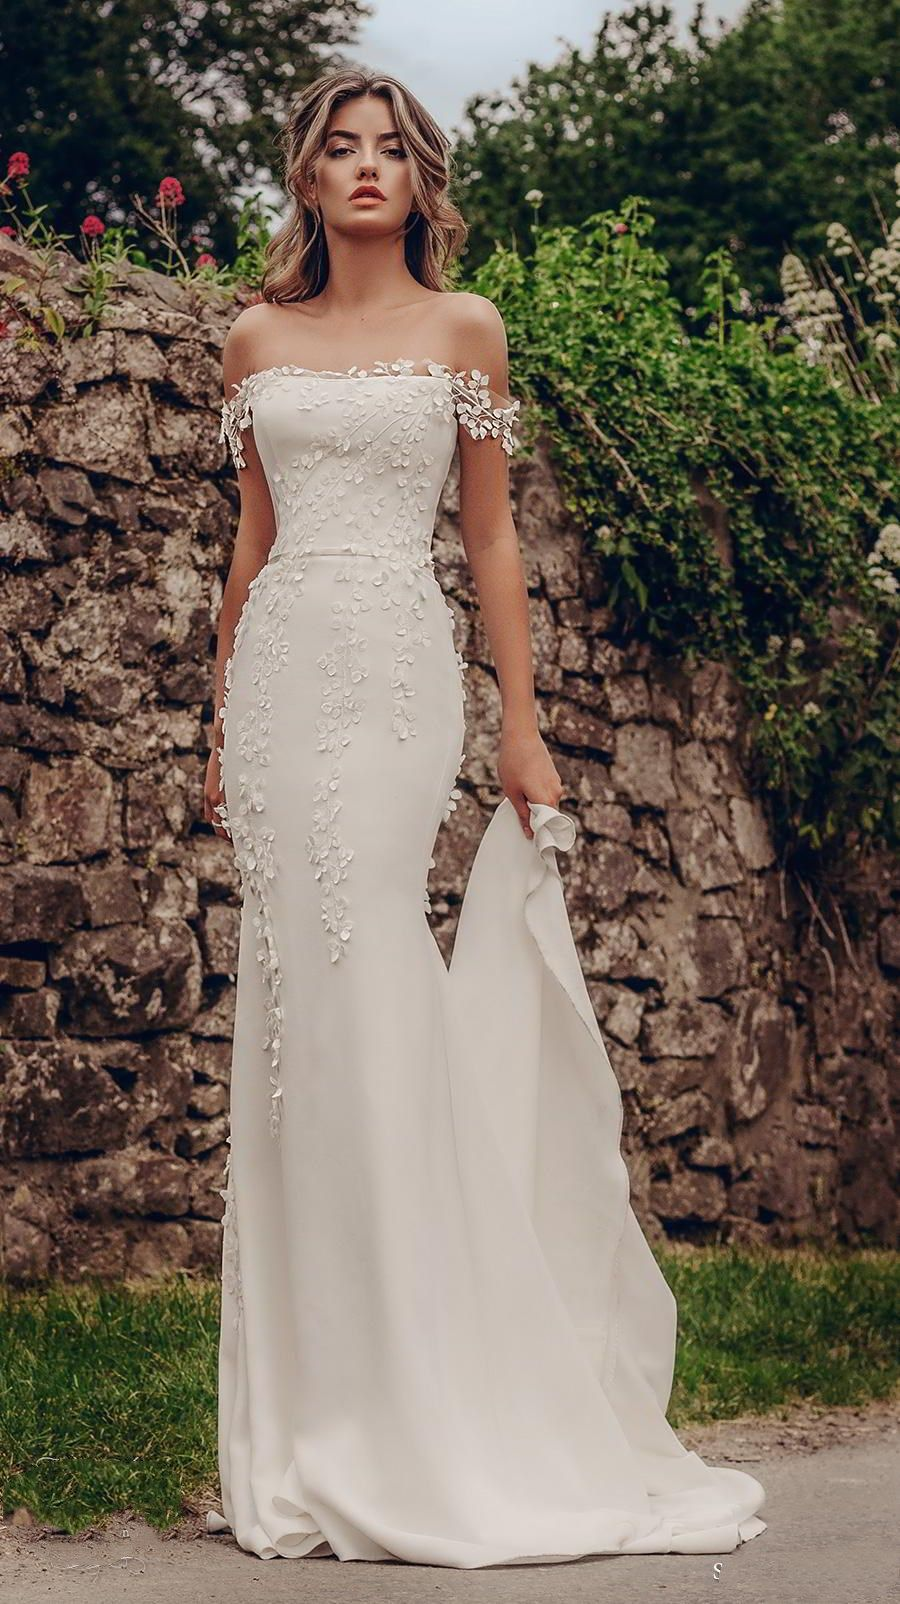 File 0b458c956d Original Fit And Flare Wedding Dress Wedding Dresses Wedding Dresses Strapless [ 1604 x 900 Pixel ]